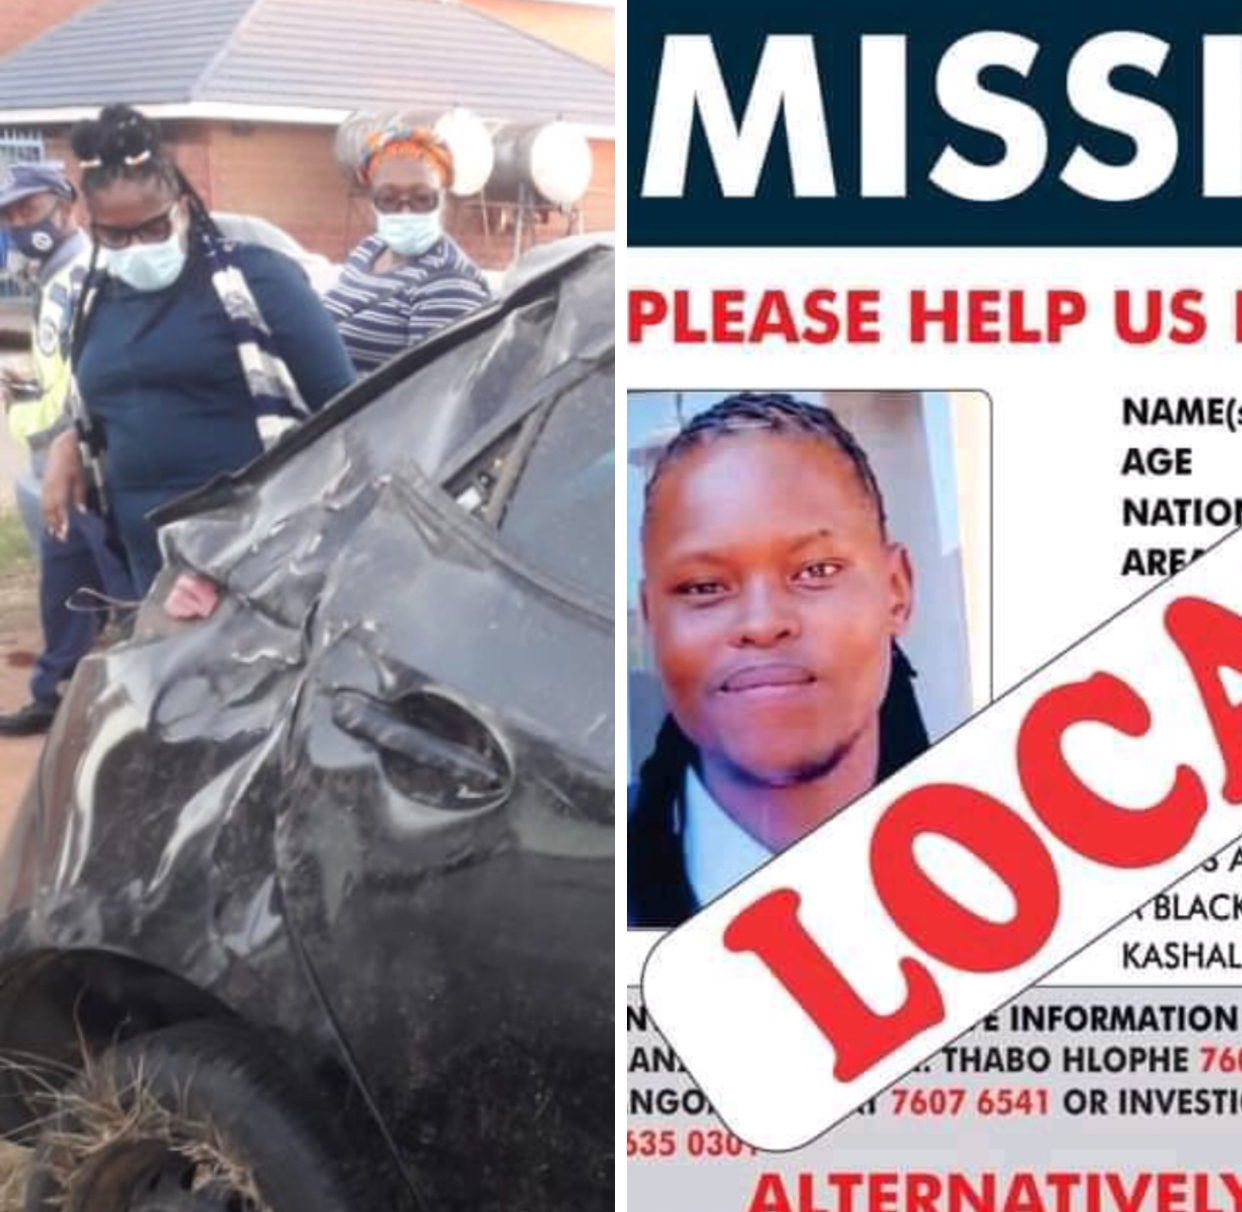 EXPOSED: Police killed missing Thabani Nkomonye dumped his body at Nhlambeni. image